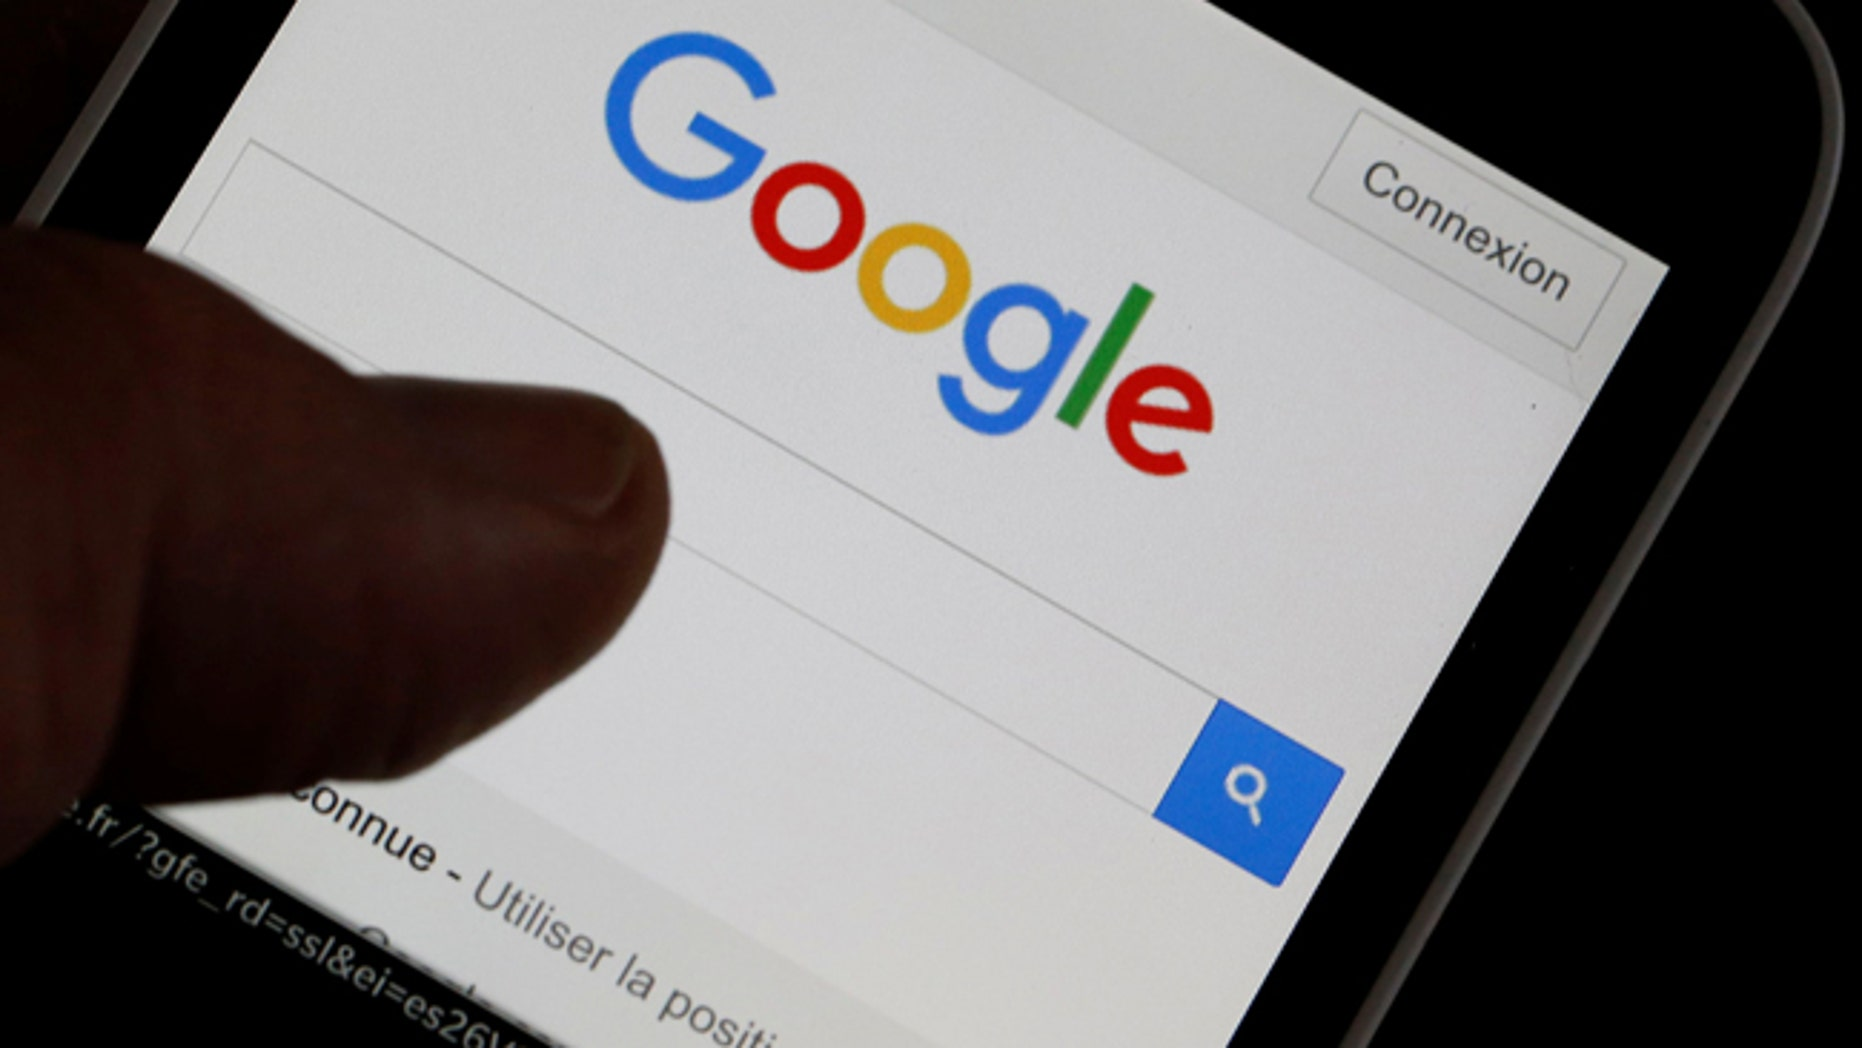 7 ways to search without using Google | Fox News